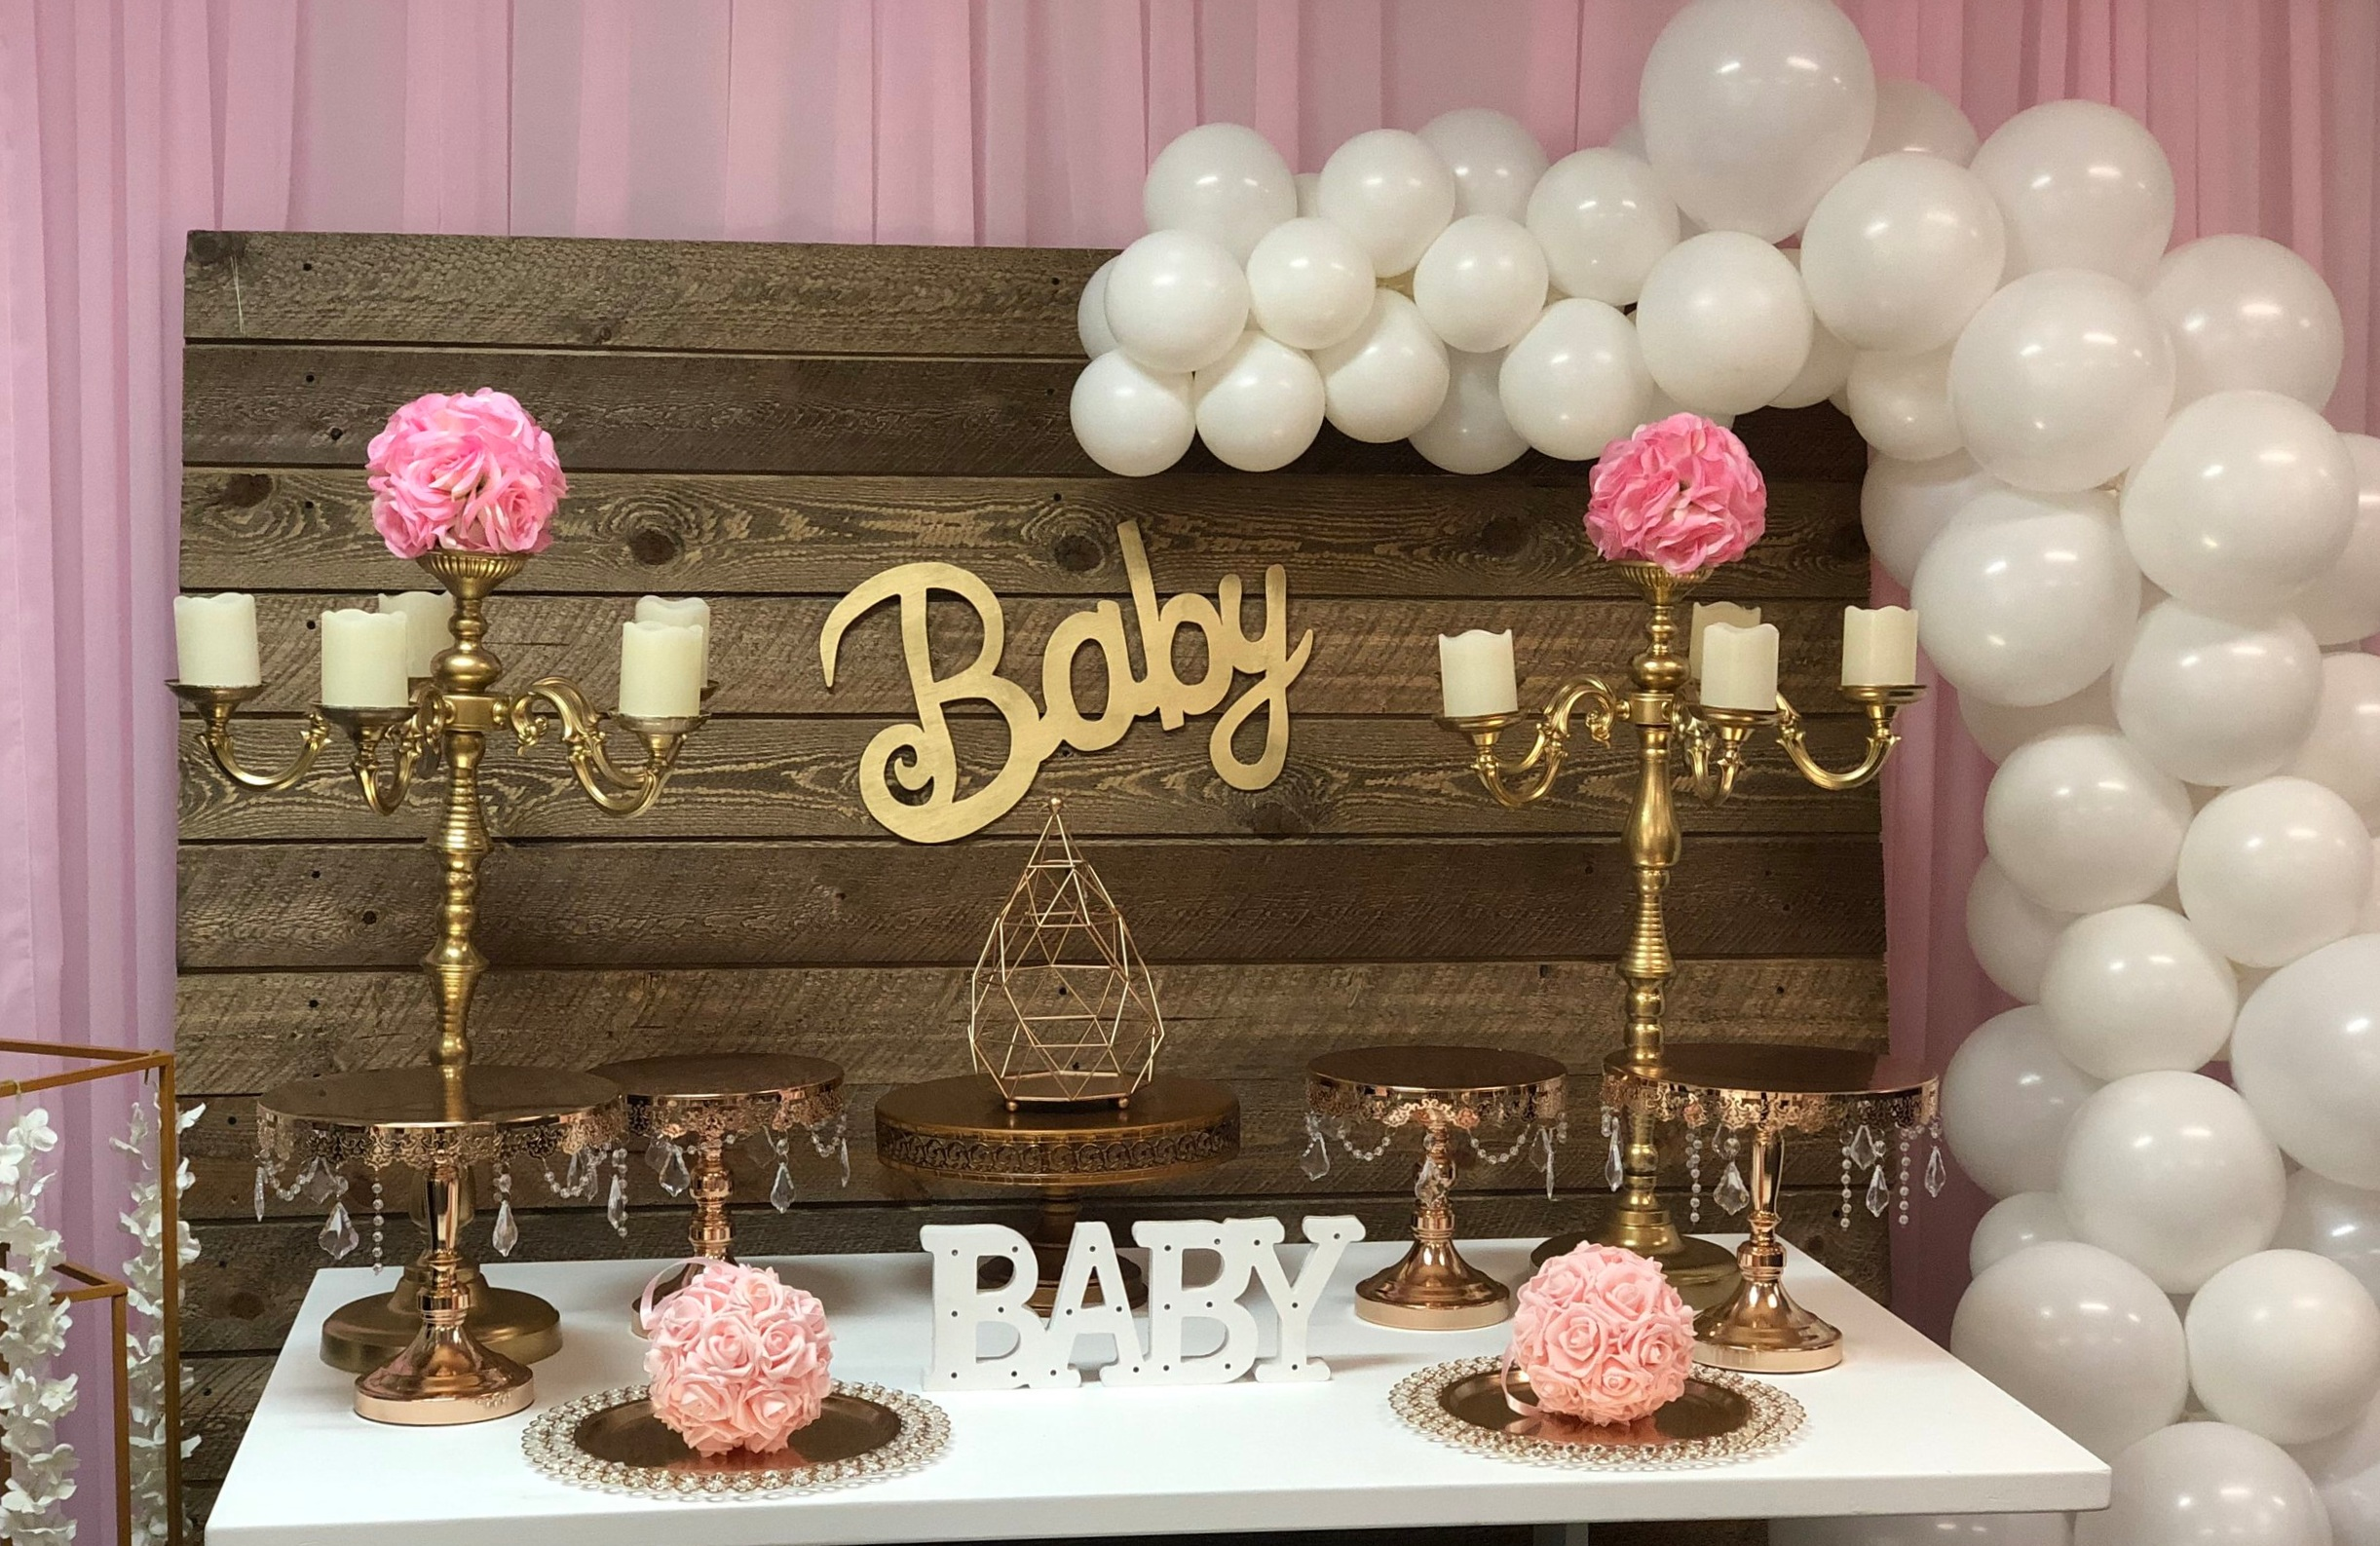 Rustic Wood Backdrop, Gold Candelabras, Gold Cake Stands, Balloon Garland, & Baby Signs